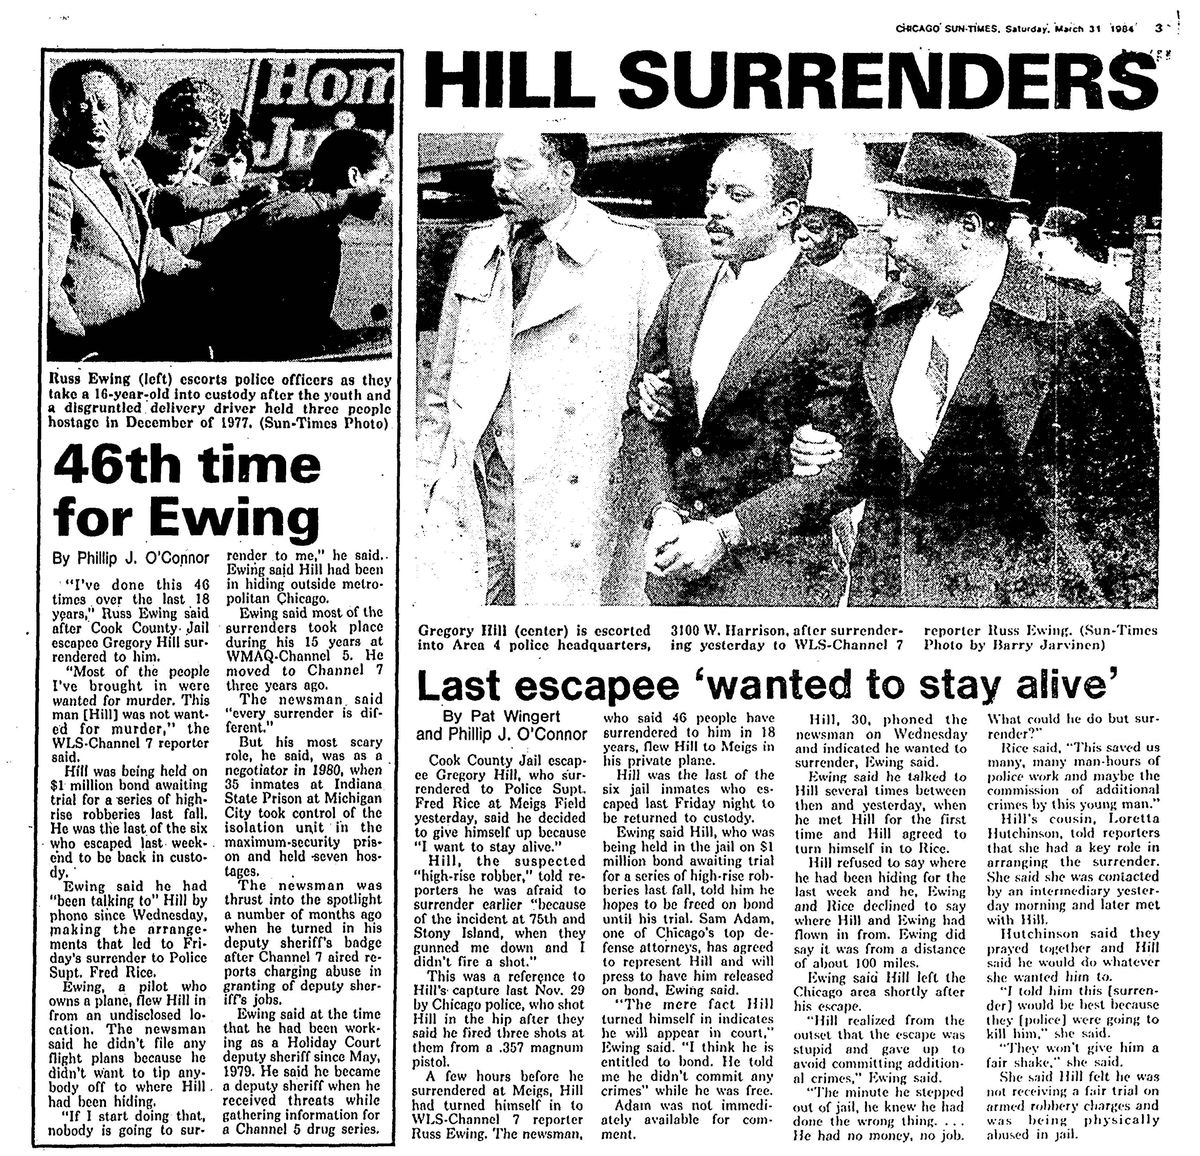 Yet another suspect surrenders to reporter Russ Ewing, the March 31, 1984, Sun-Times reported.